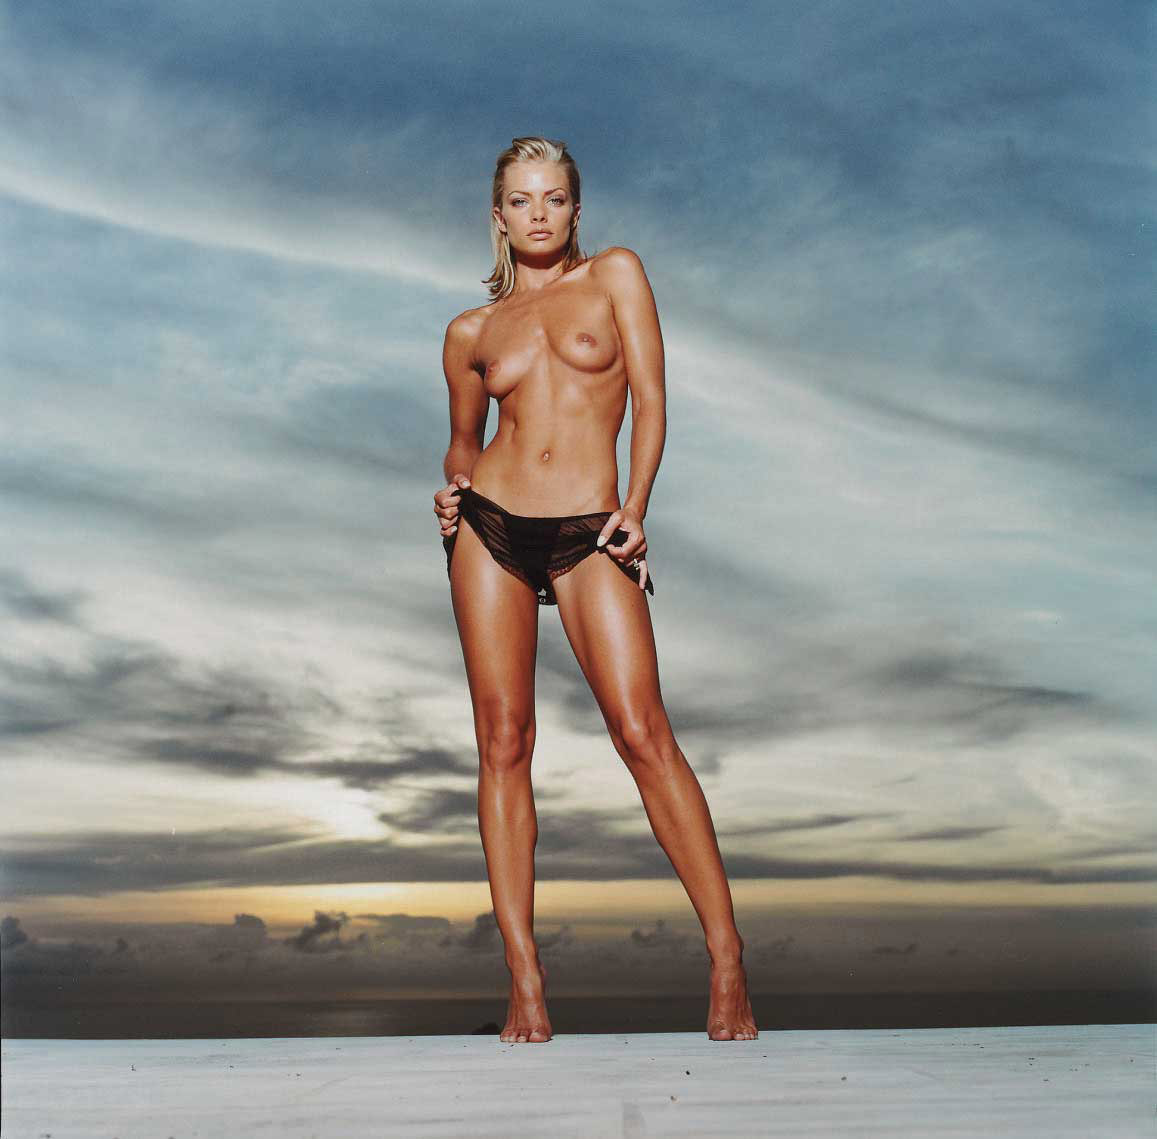 Jaime pressly nude and sexy, uploaded by ferarithin